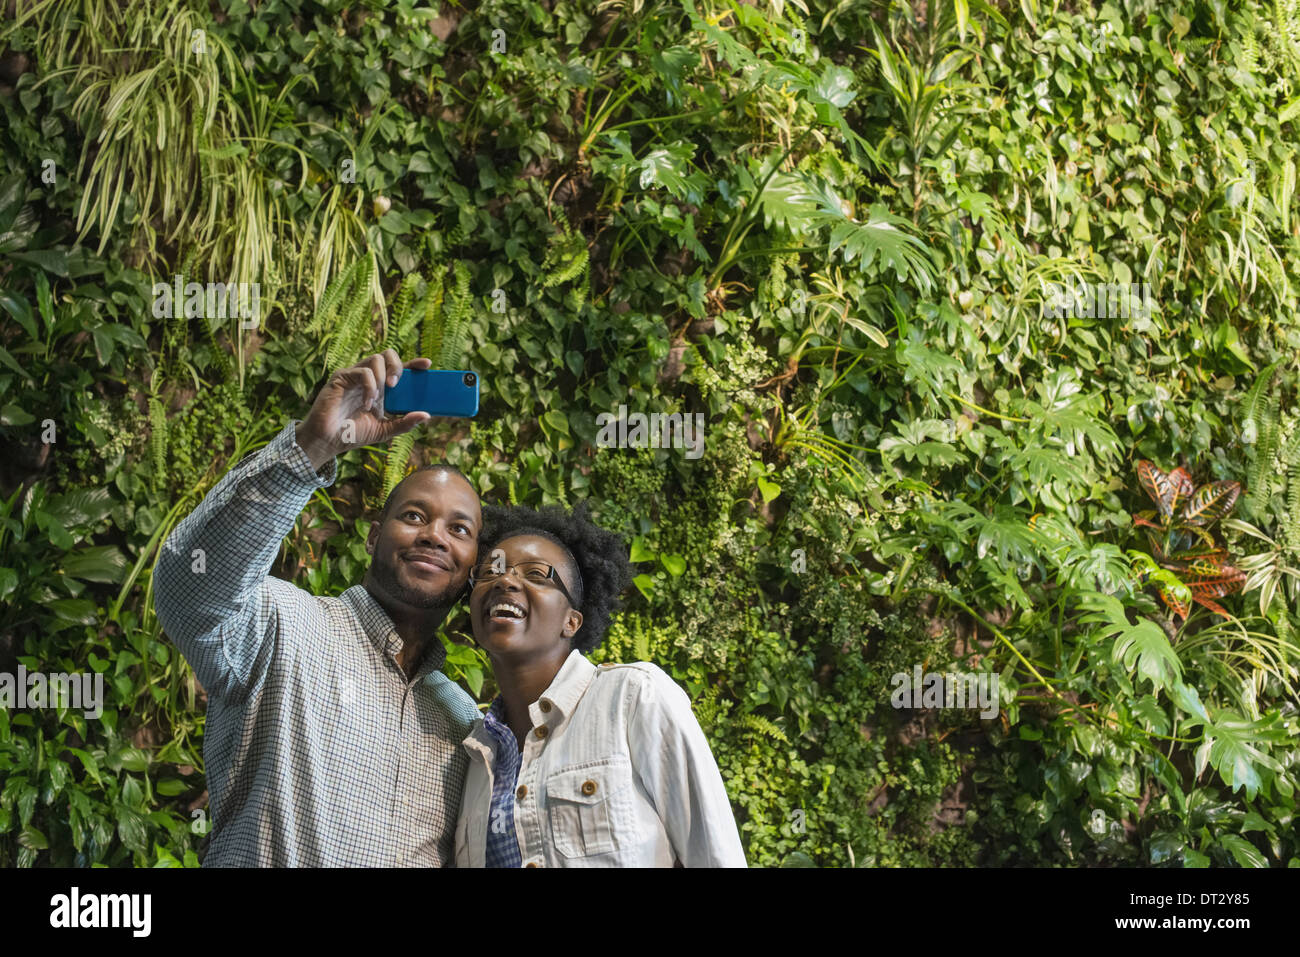 A couple standing in front of a wall covered with lush thick foliage - Stock Image